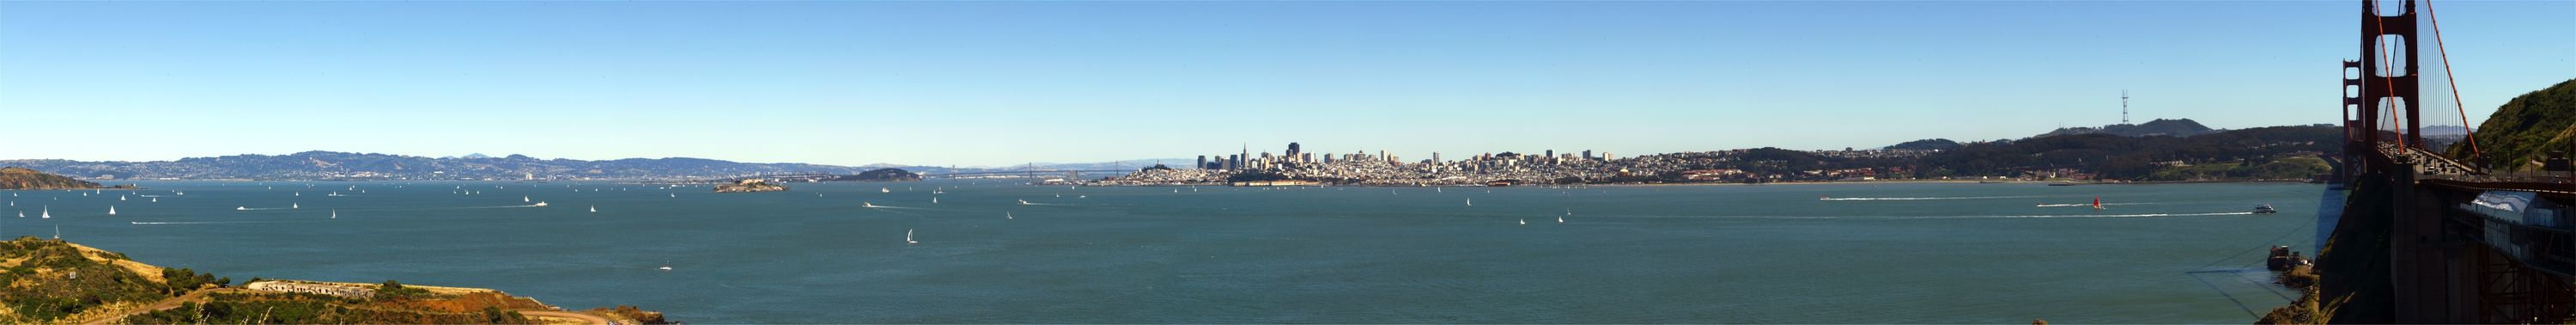 San Francisco from Golden Gate Bridge Head